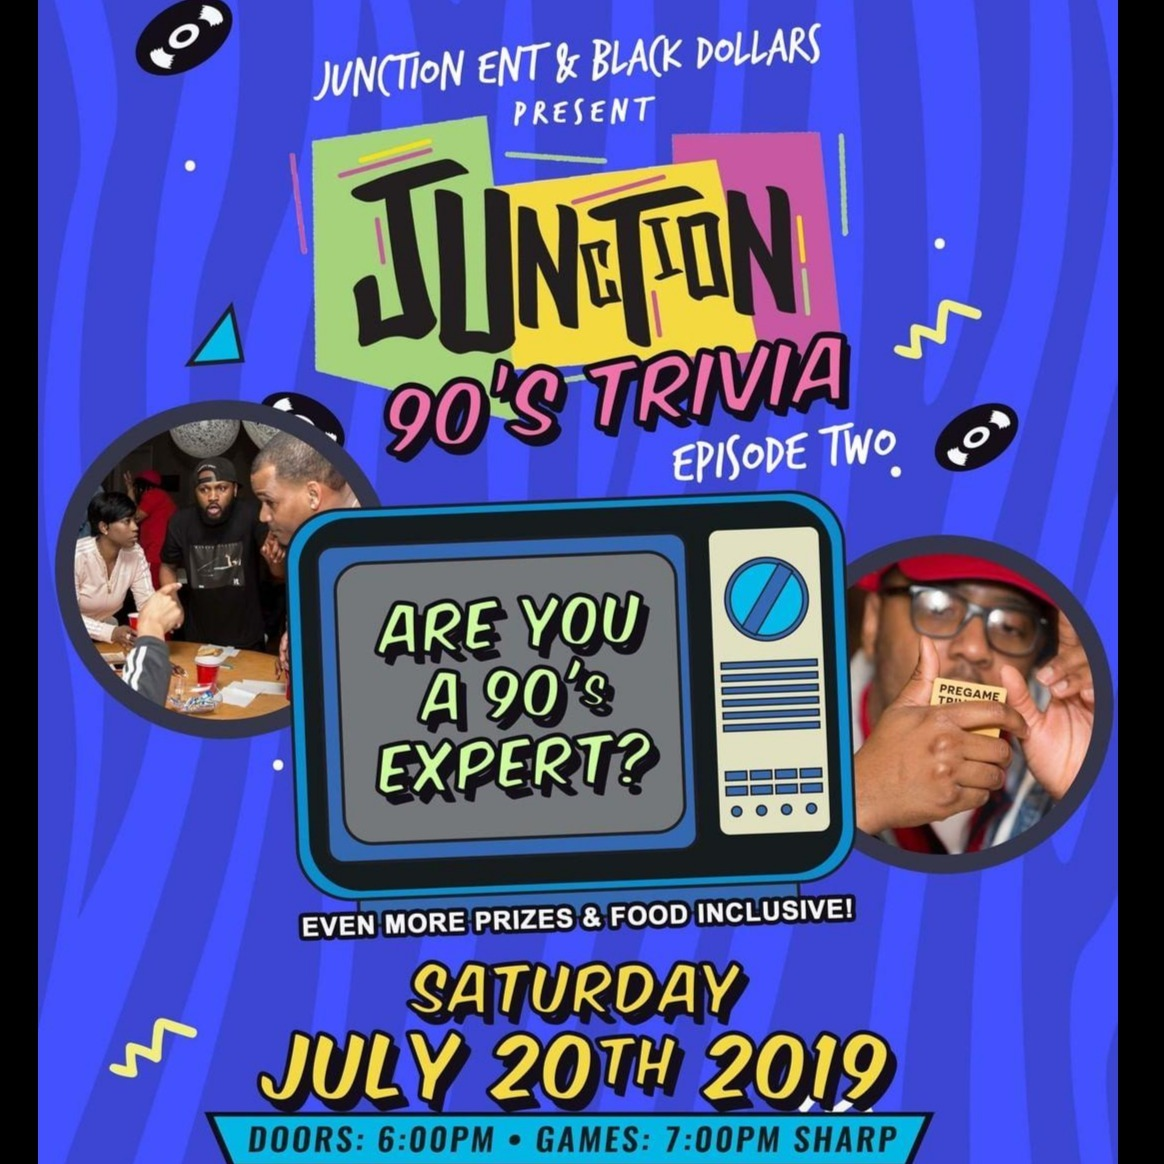 JUNCTION PRESENTS: 90'S TRIVIA GAME NIGHT! Episode #2